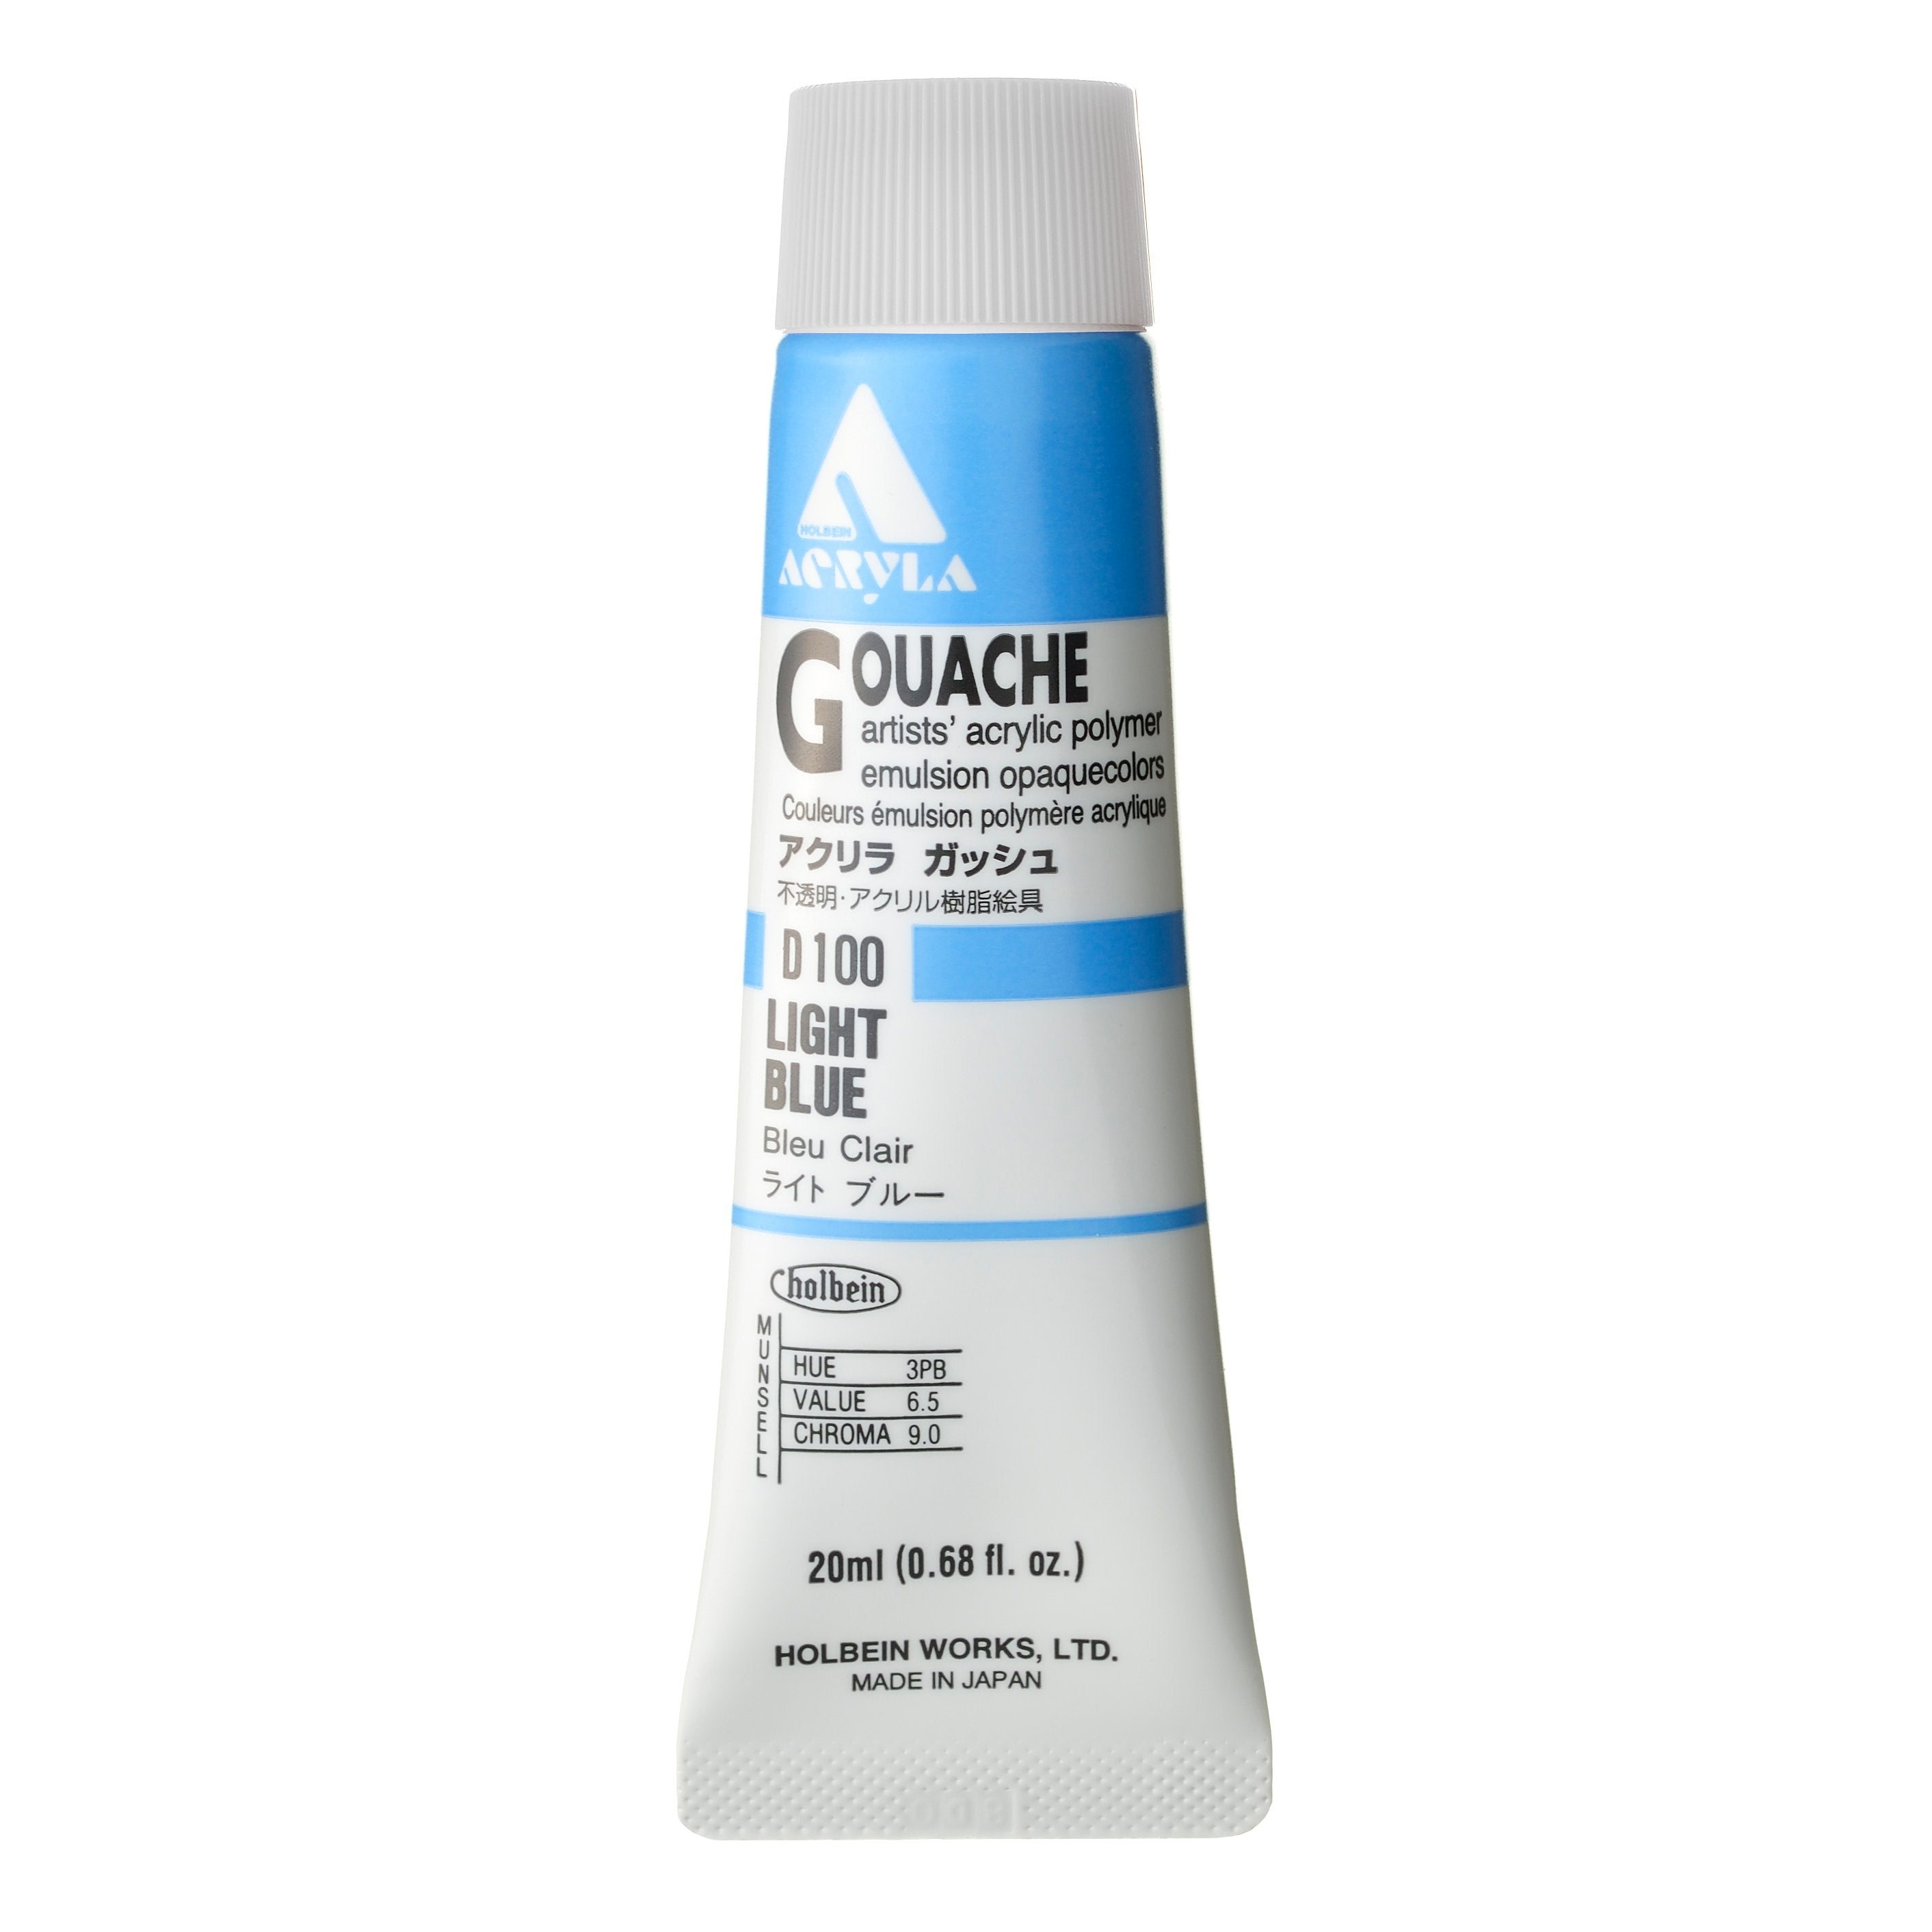 Holbein Acryla Gouache, 20ml, Light Blue